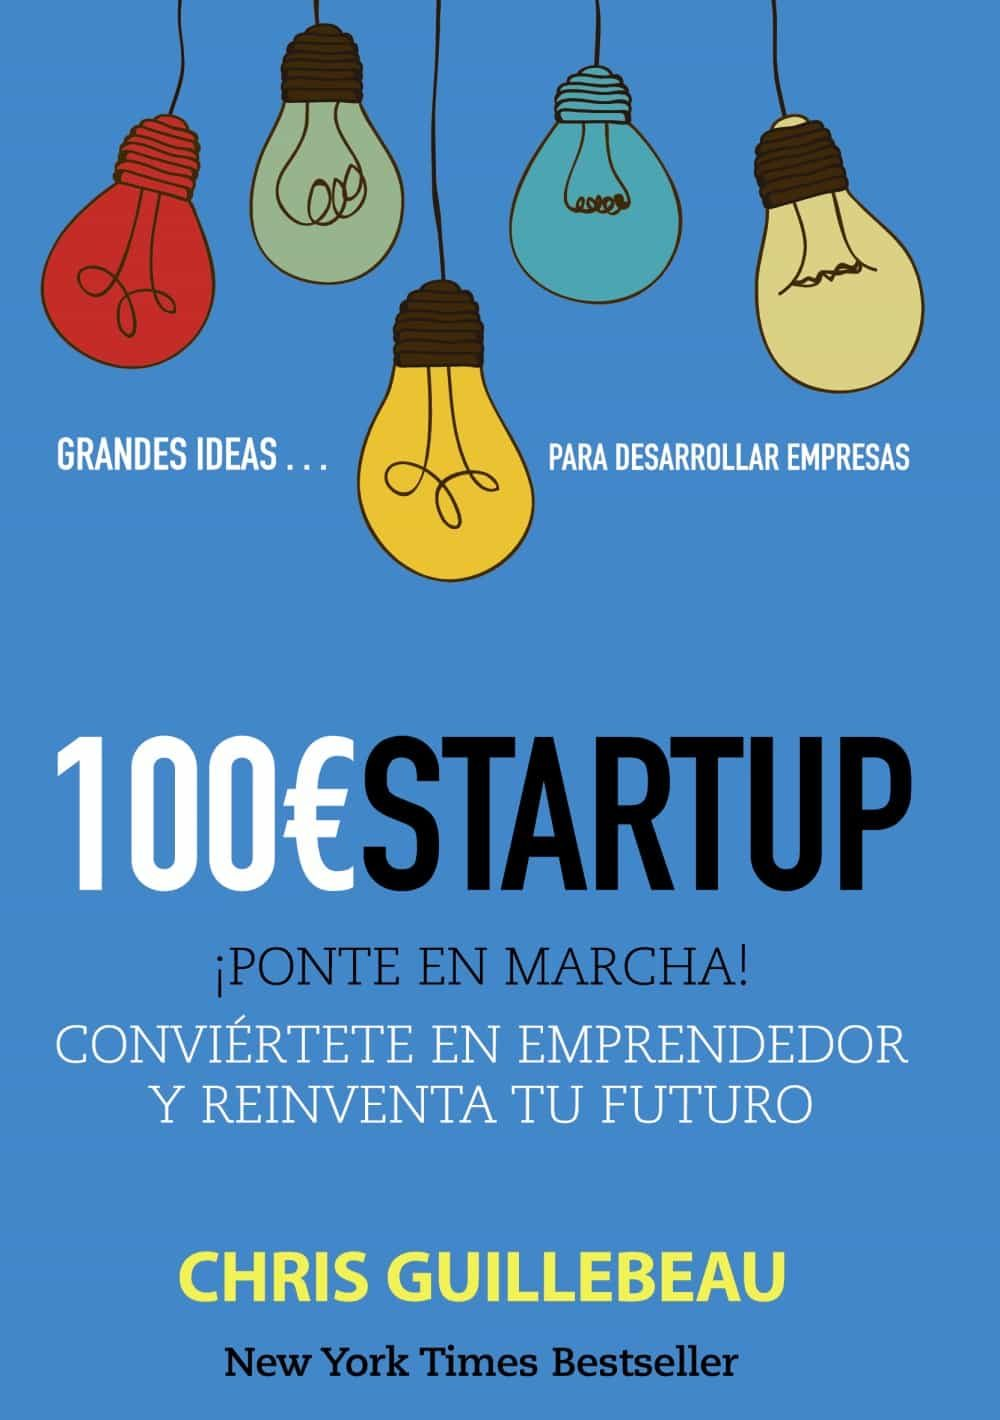 the 100 startup by chris guillebeau pdf